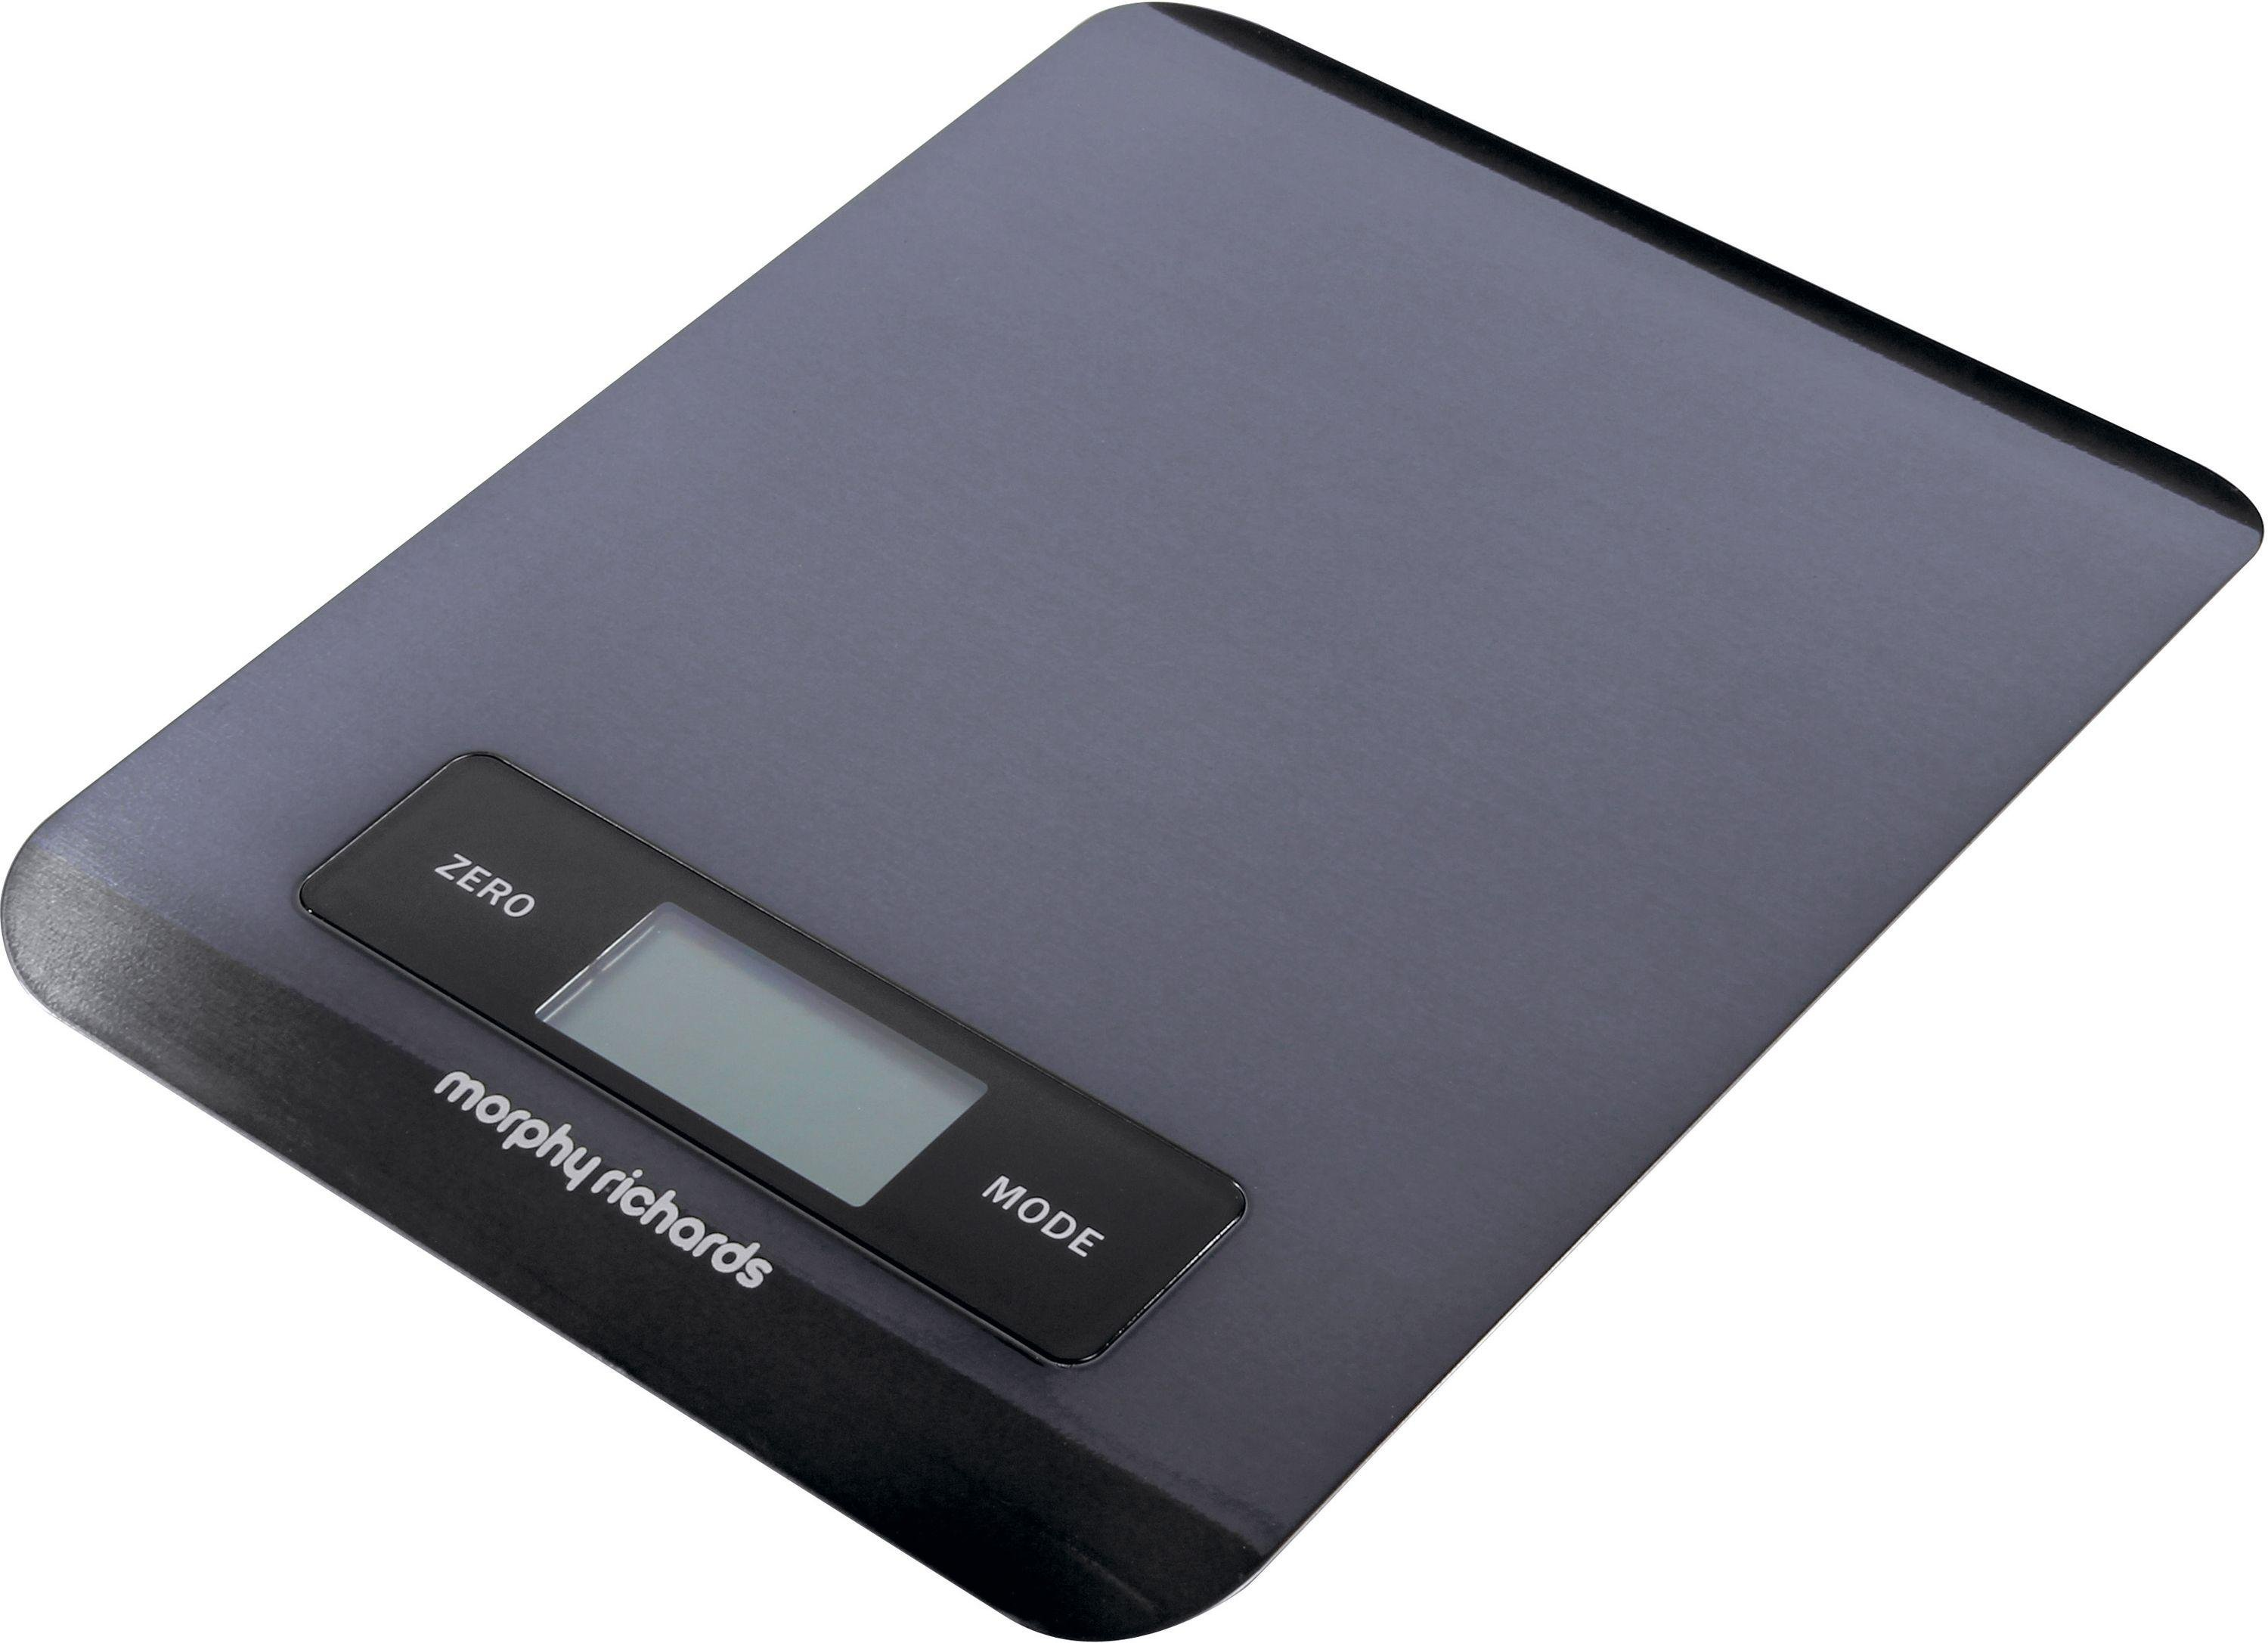 morphy-richards-accents-electronic-kitchen-scale-black